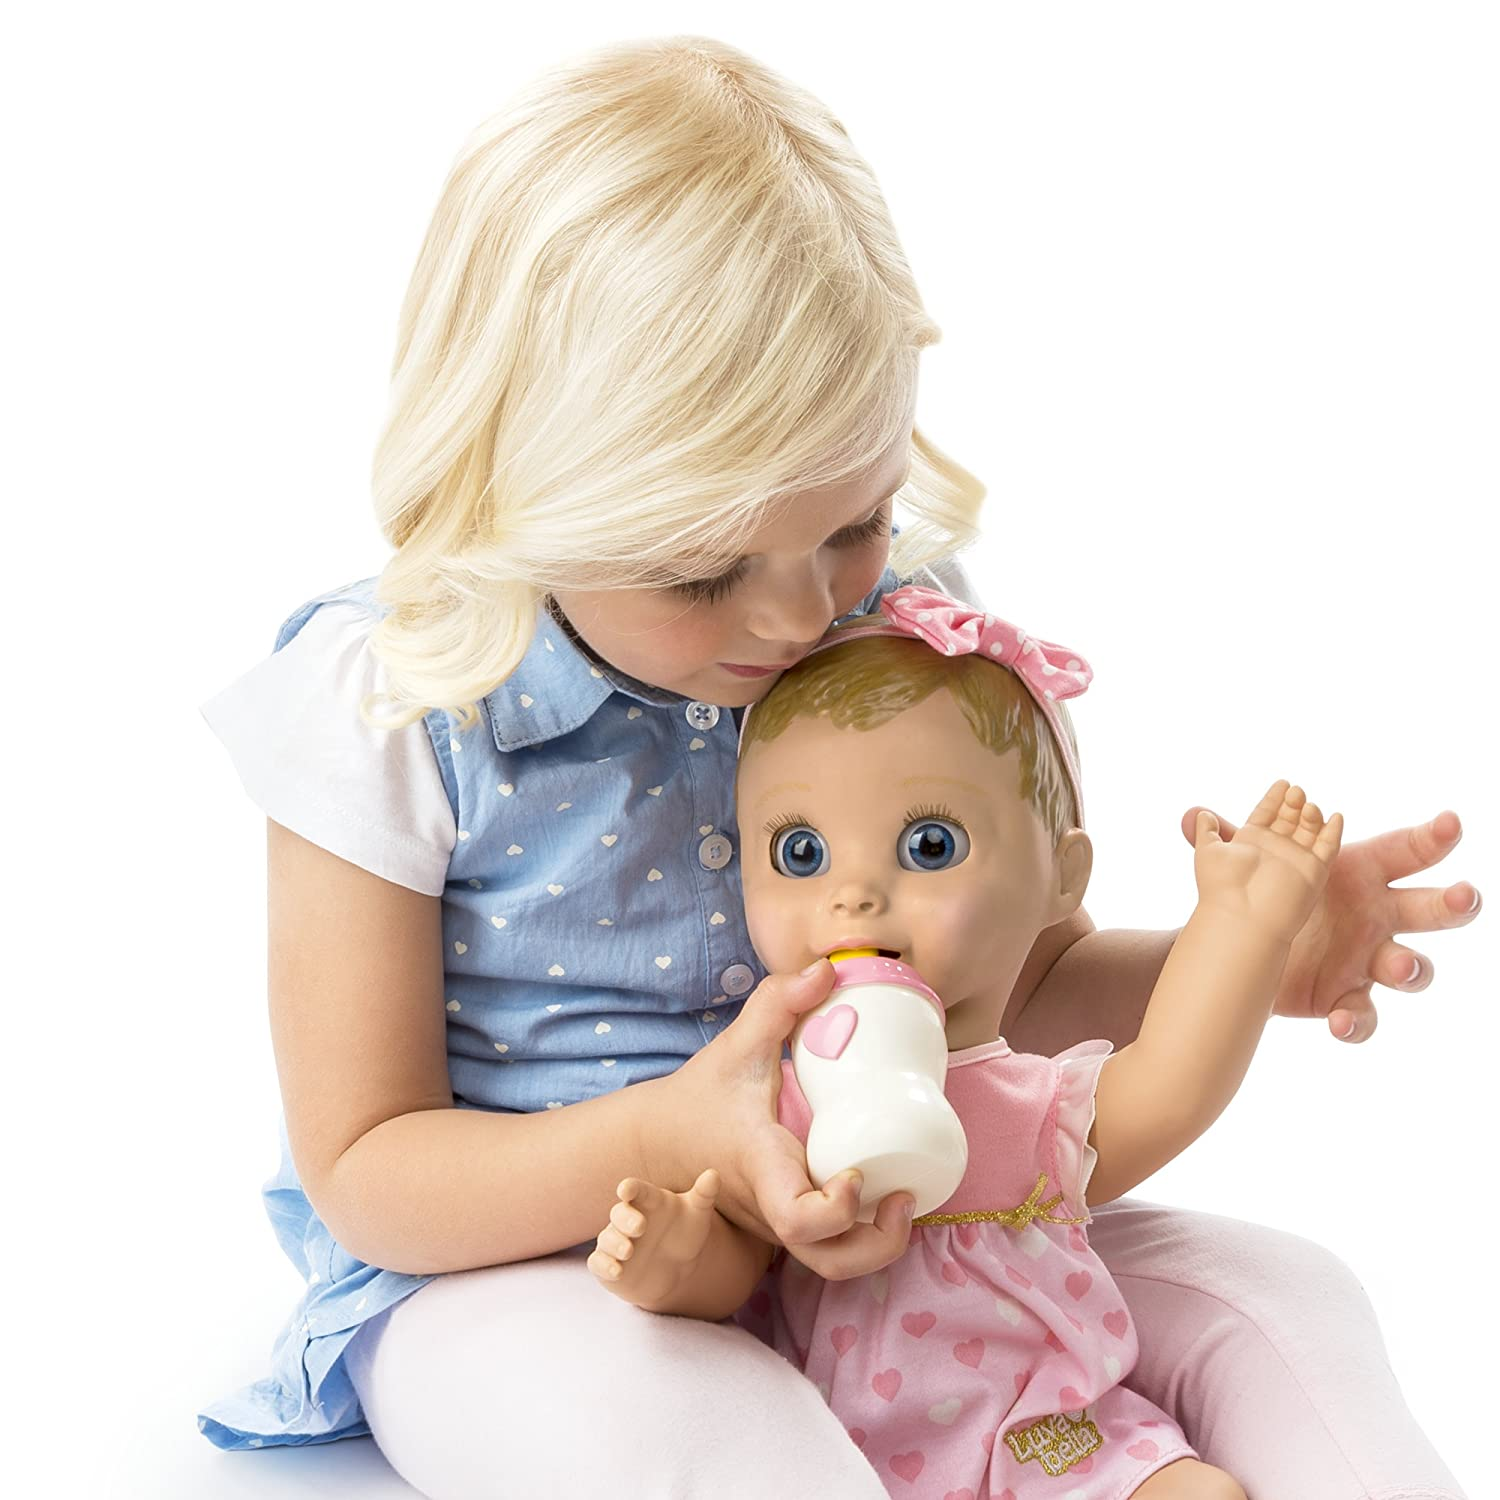 Amazon Com Luvabella Blonde Hair Interactive Baby Doll With